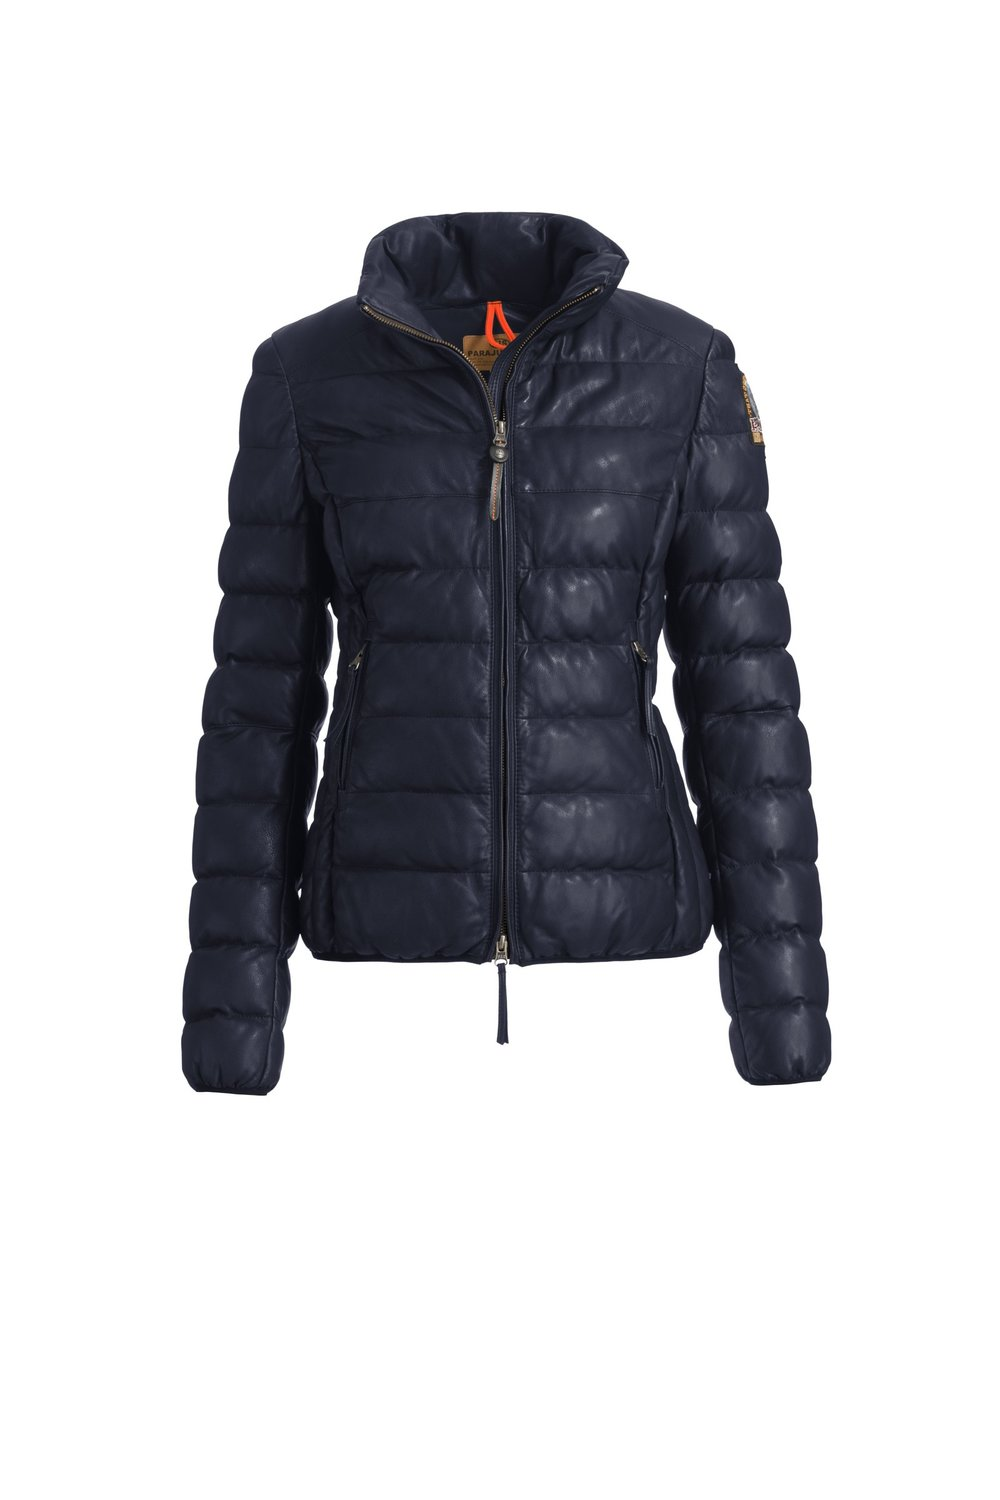 blanc blog one warm coat parajumpers leather.jpg